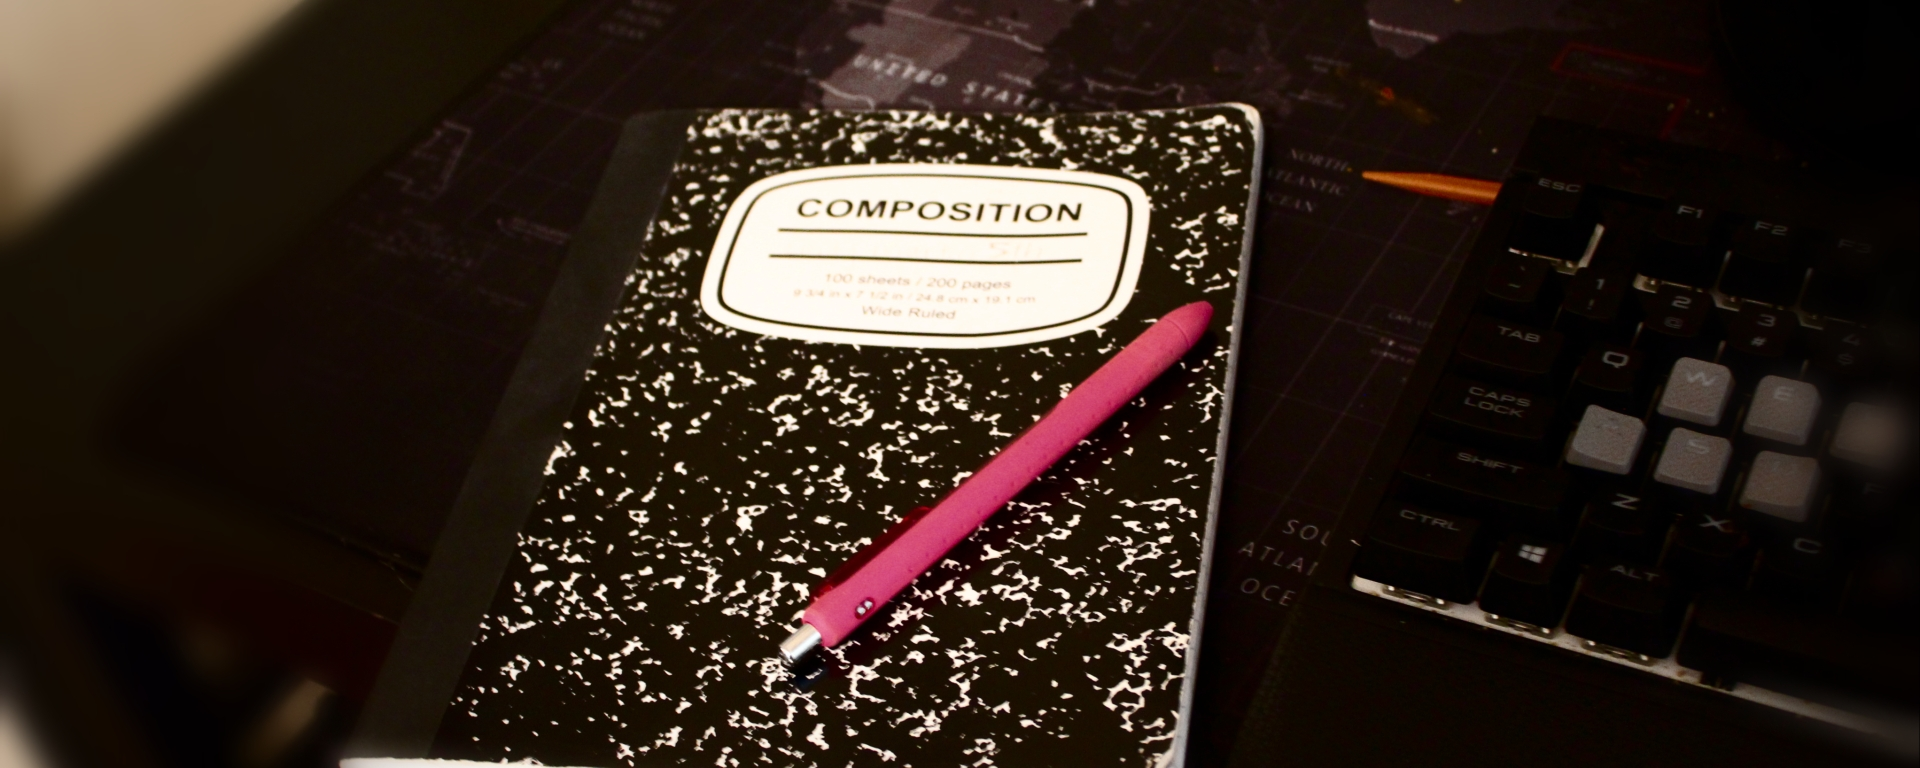 A composition notebook and pink pen next to a keyboard.